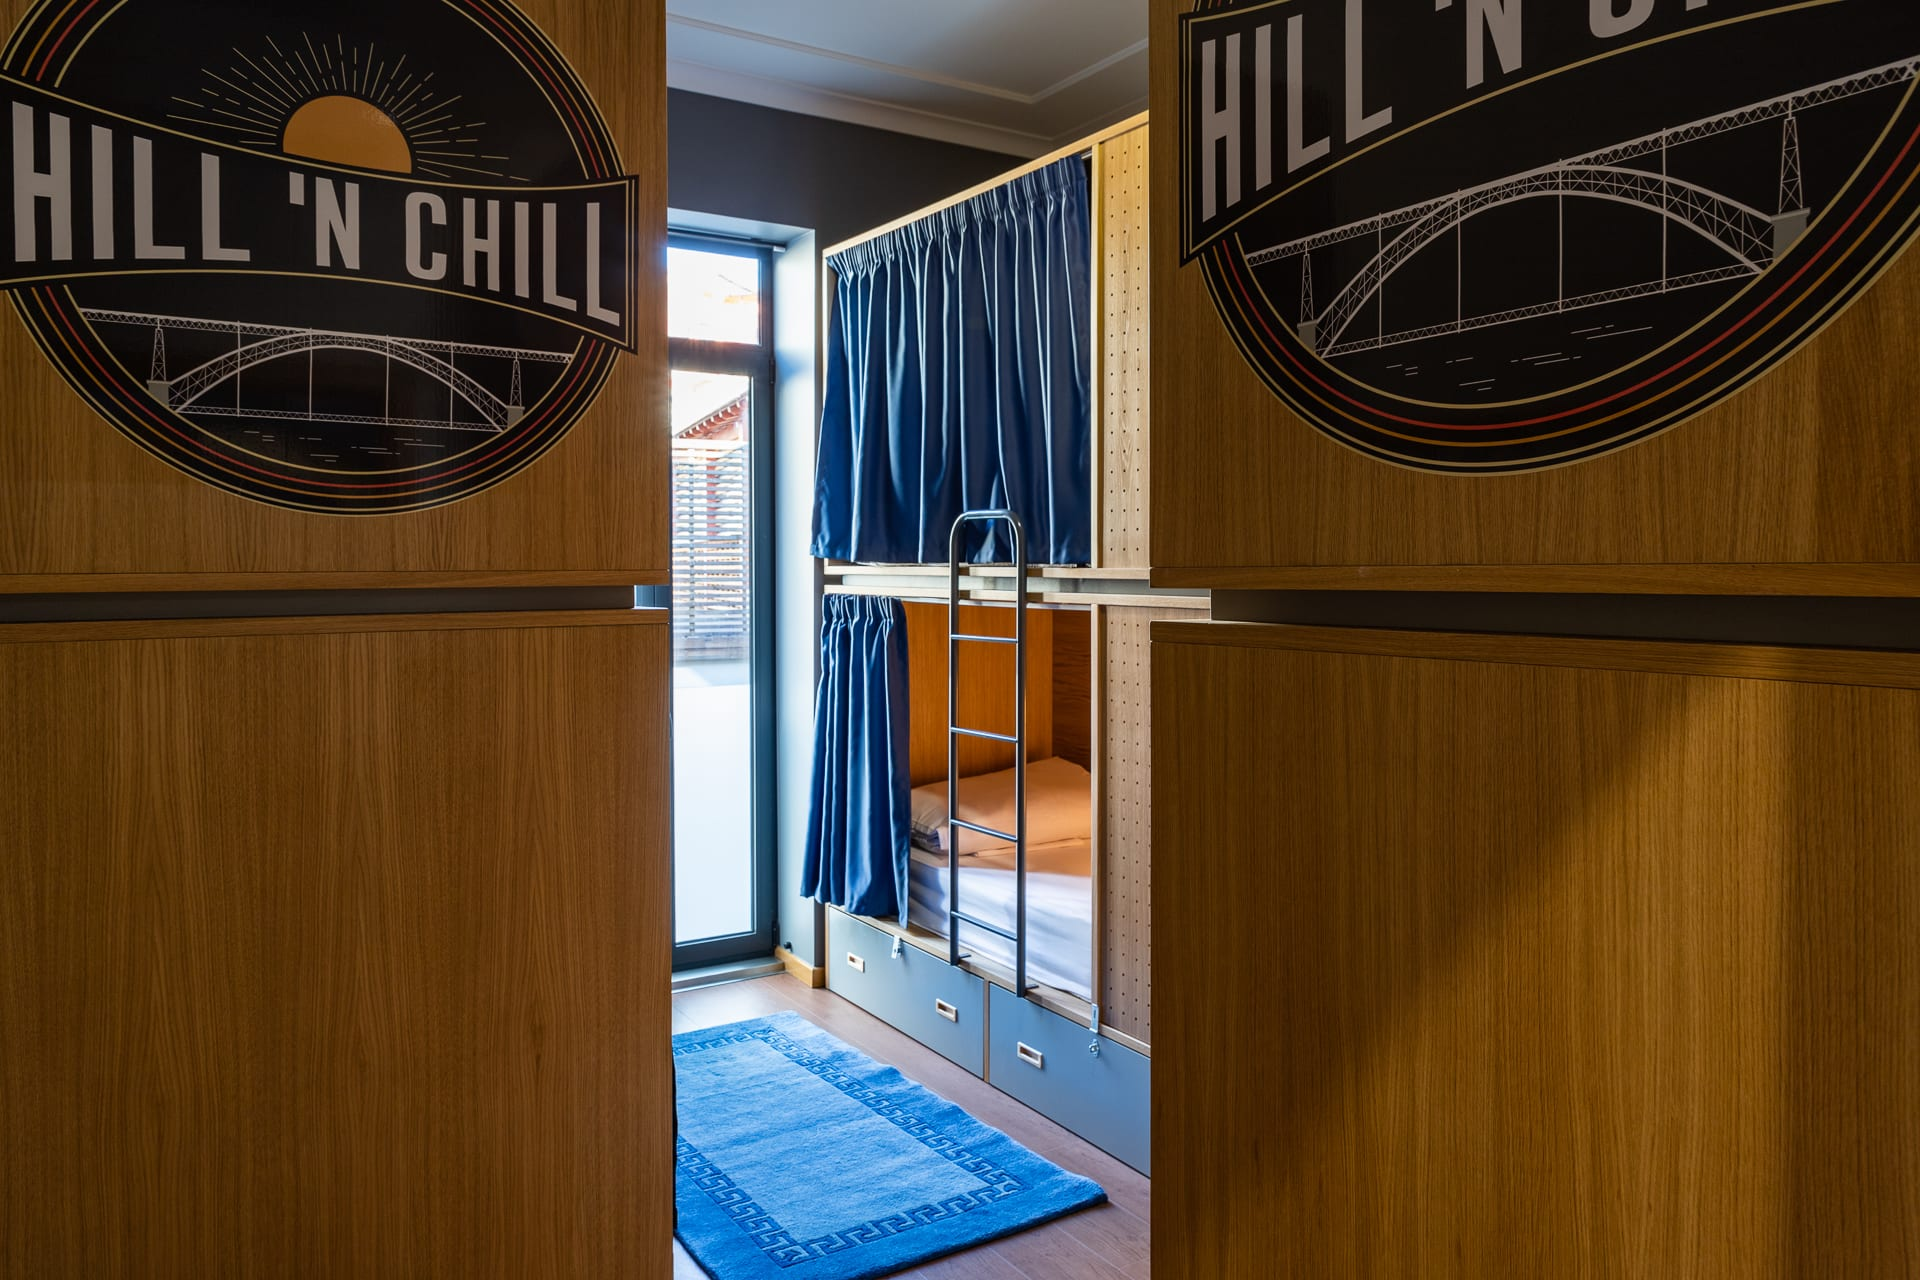 HOSTEL - Hill 'n Chill Gaia Porto